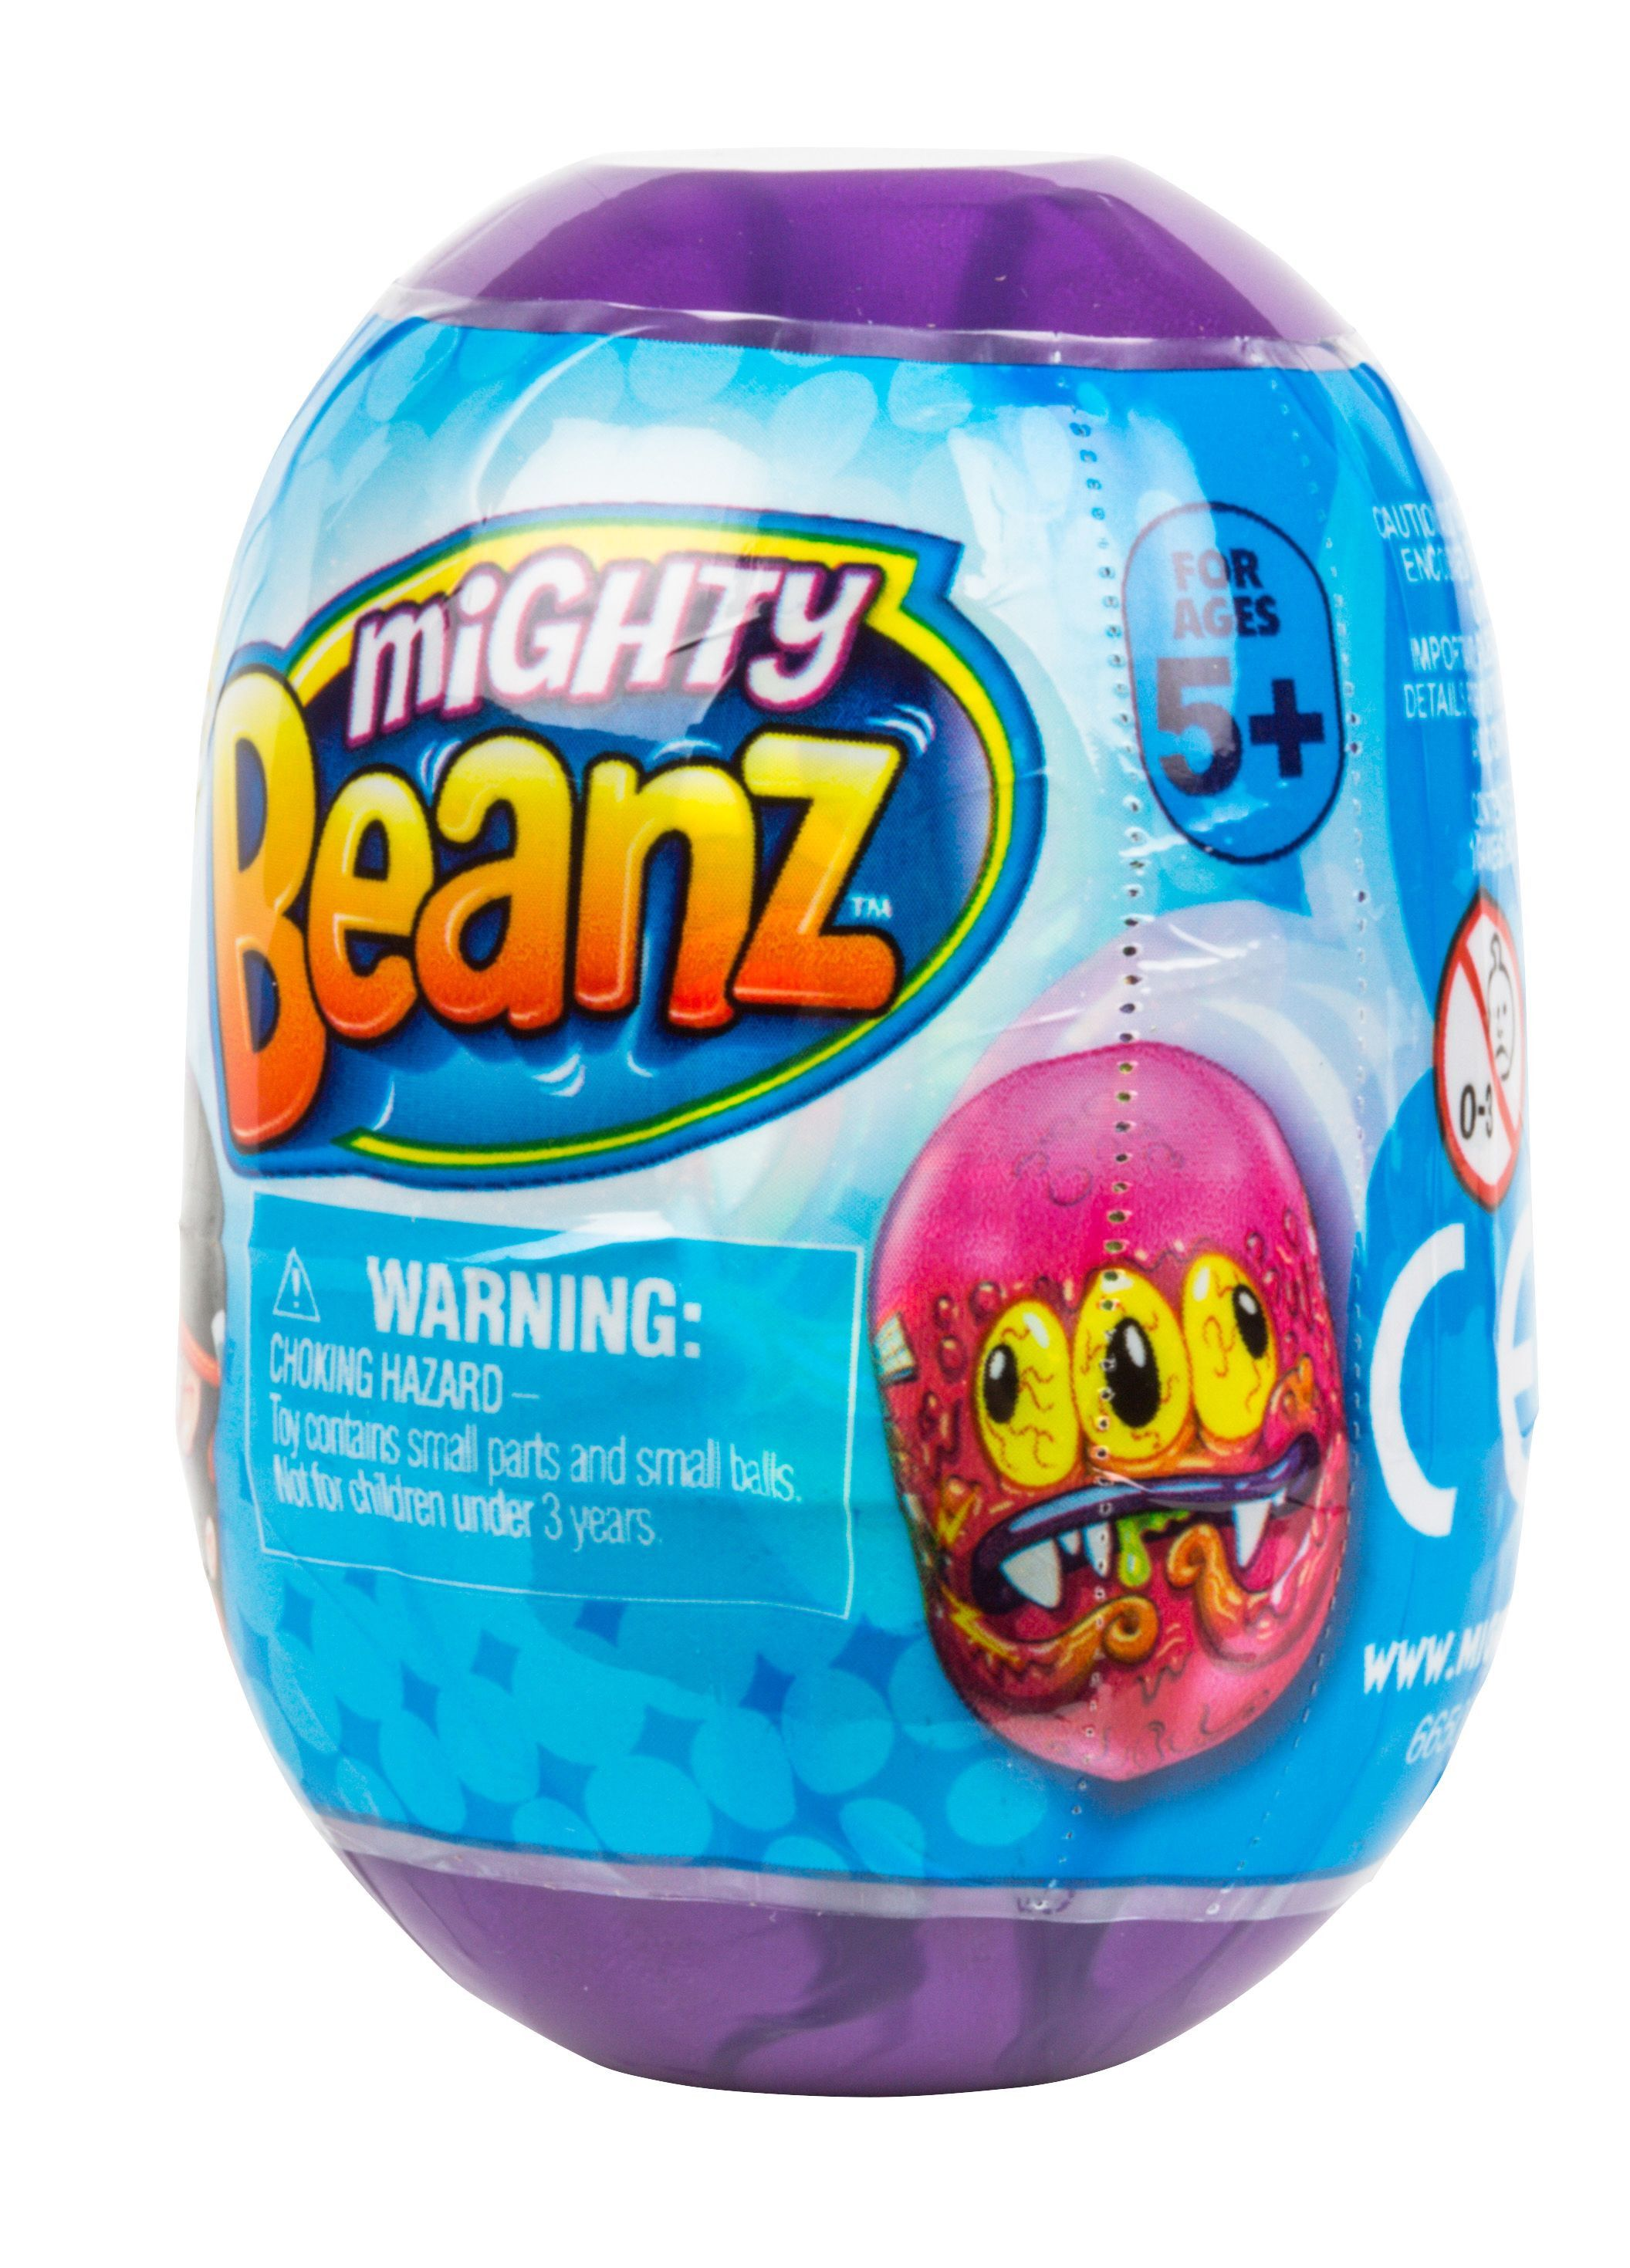 Mighty beanz 2 pack bean pod toyworld with images